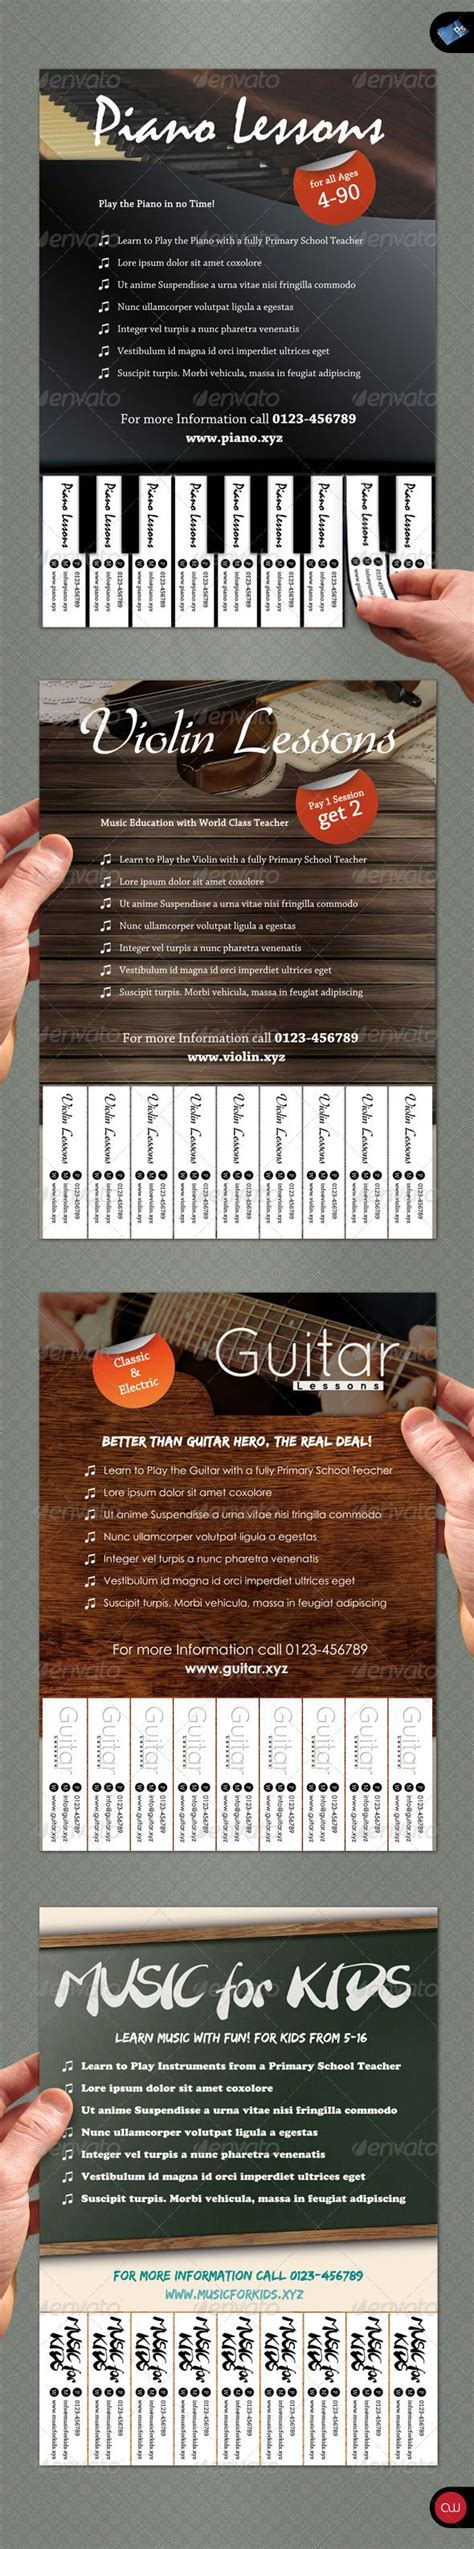 Tear Off Flyer Vol 1 Music Business Pianos And Piano Lessons Tear Flyer Template Illustrator